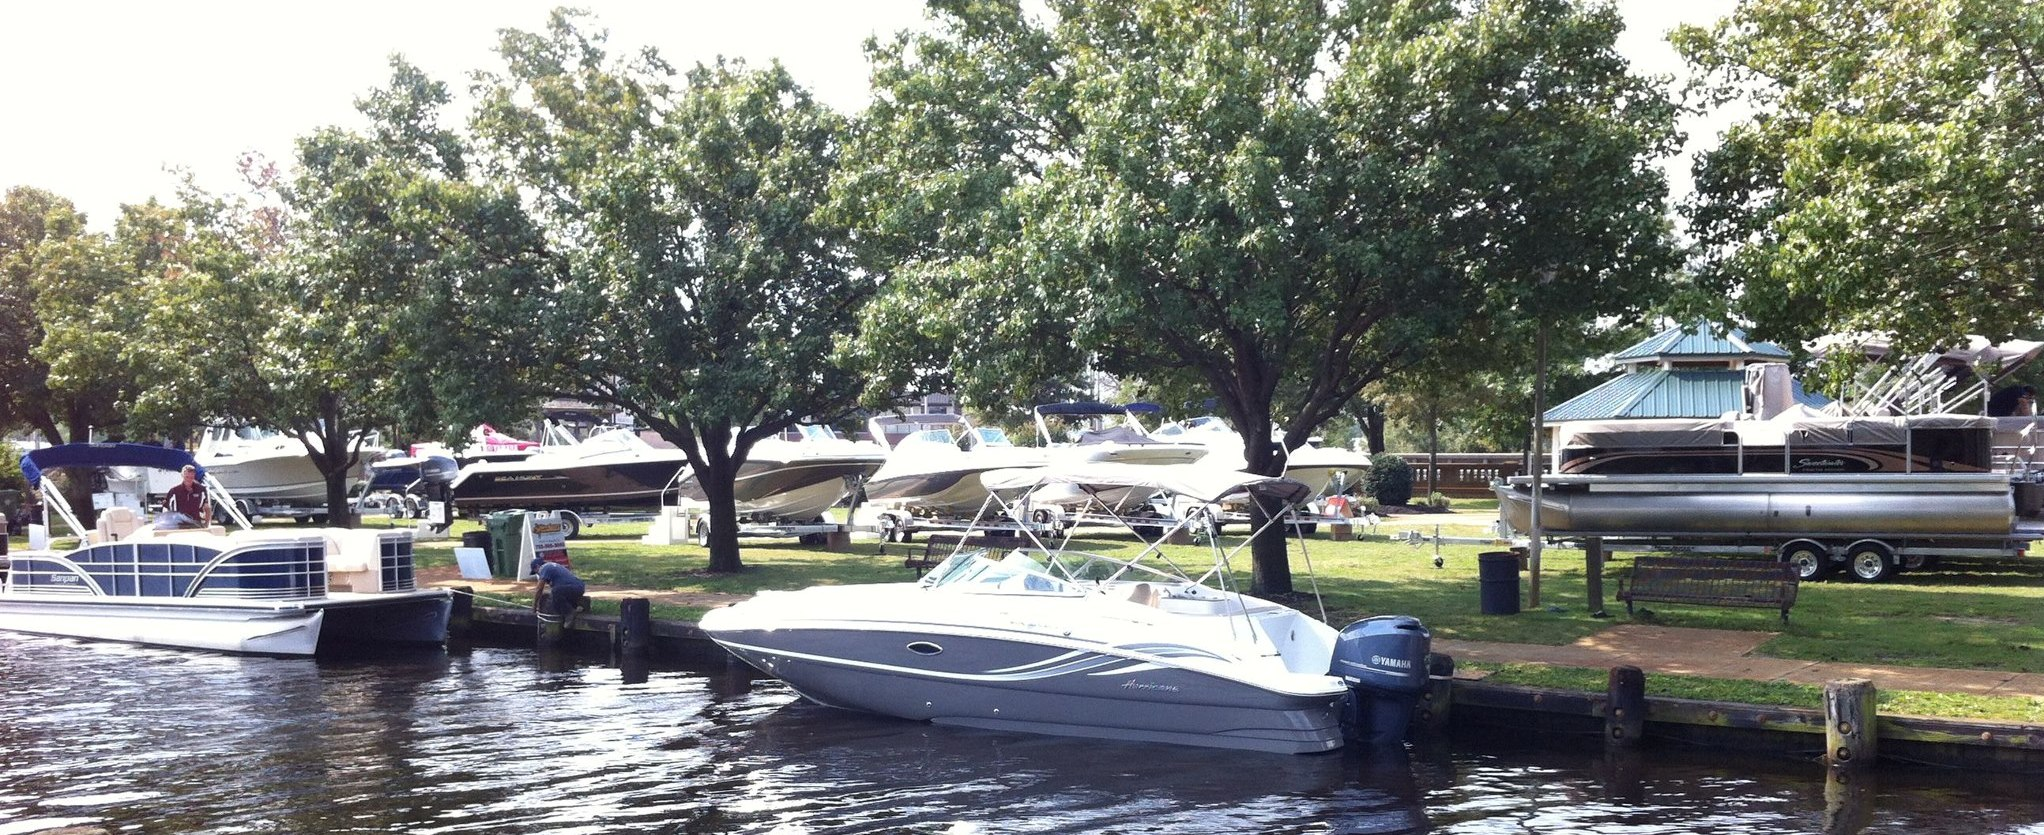 The #1 selling boat brands and most affordable